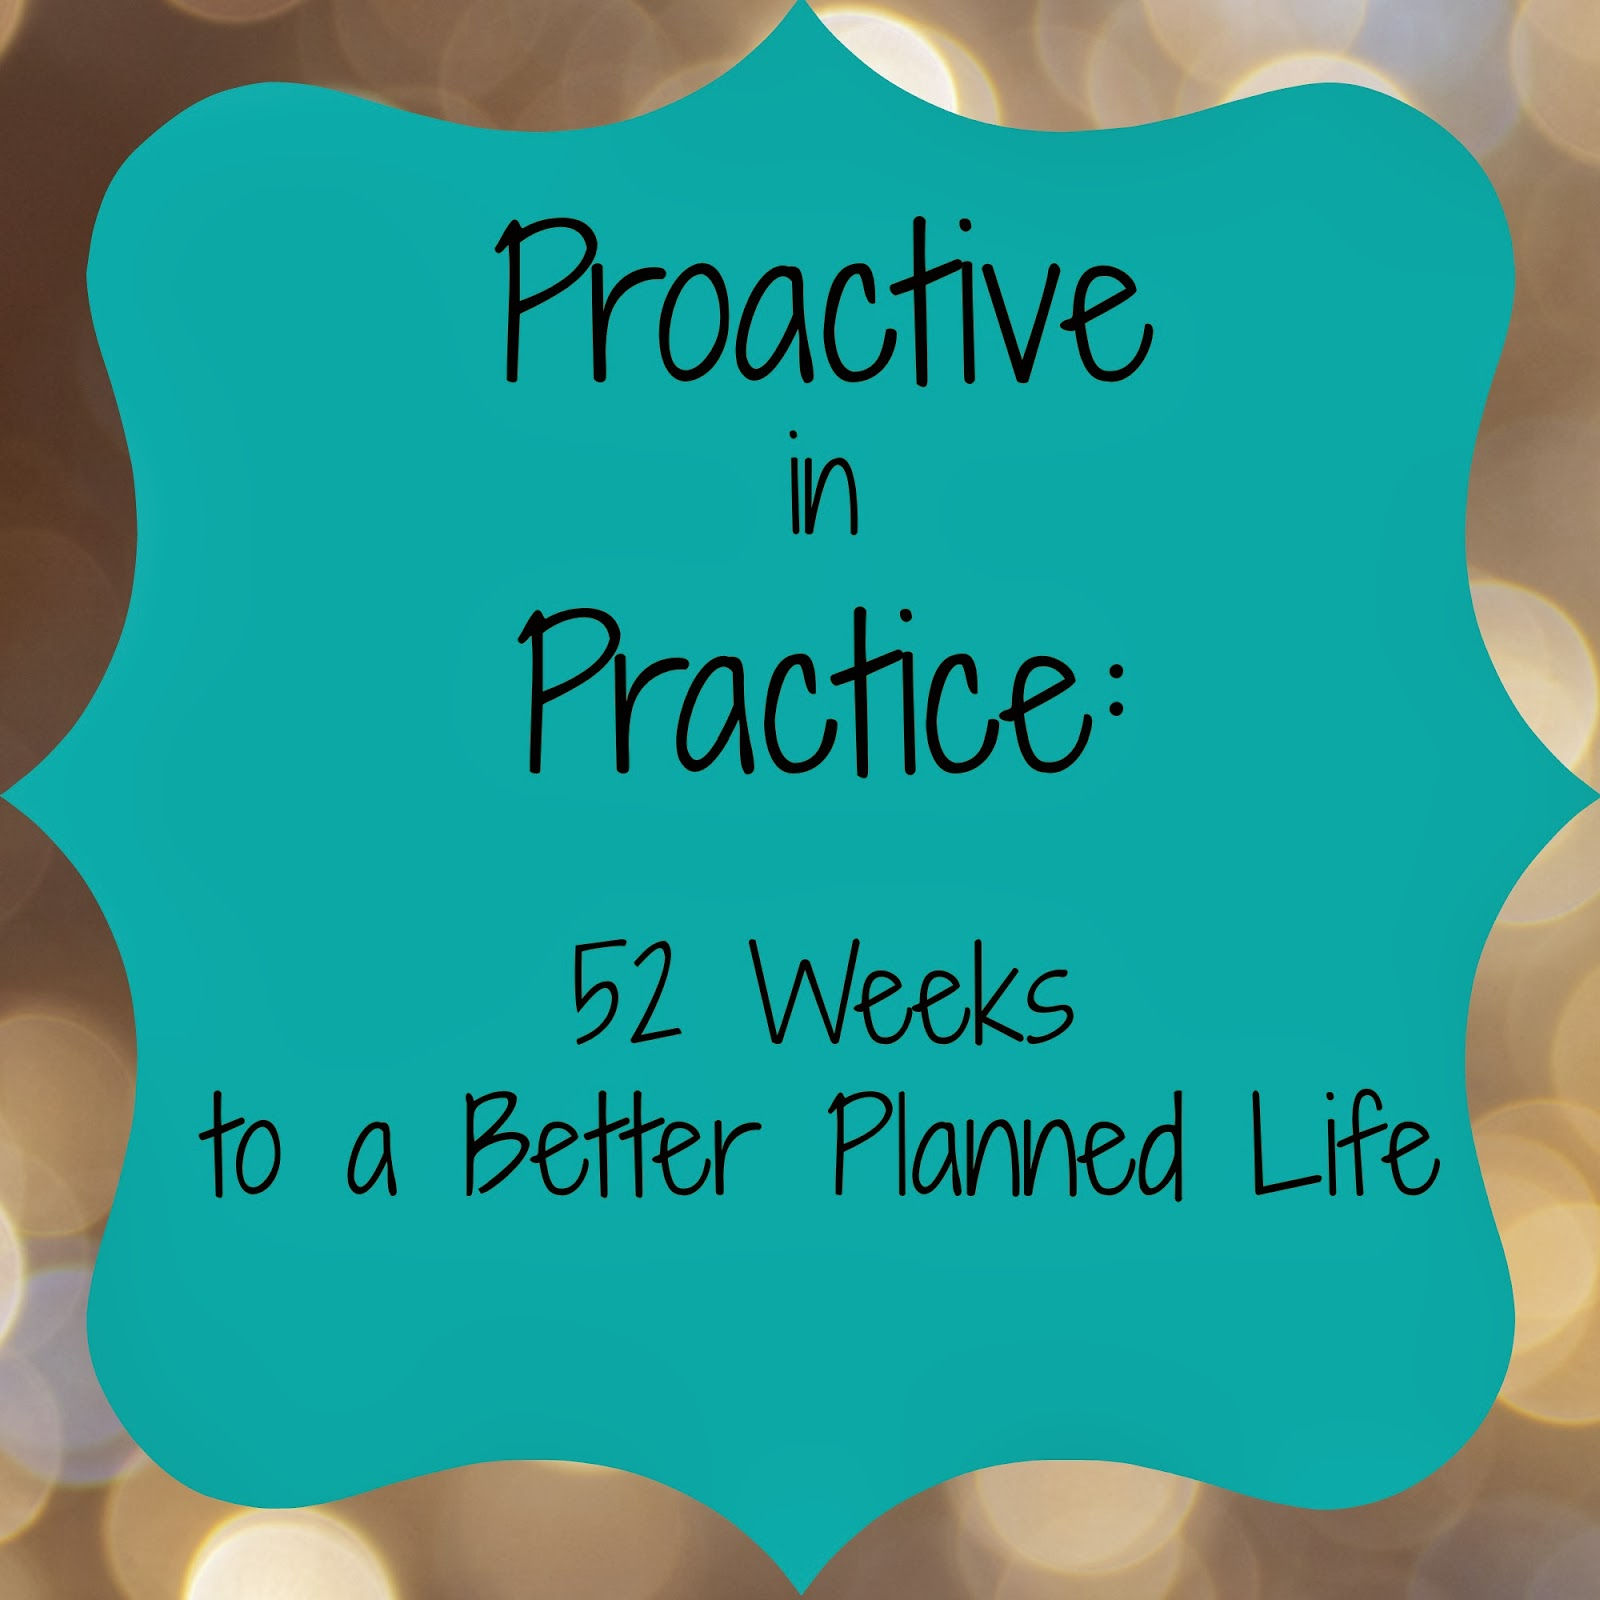 Proactive in Practice